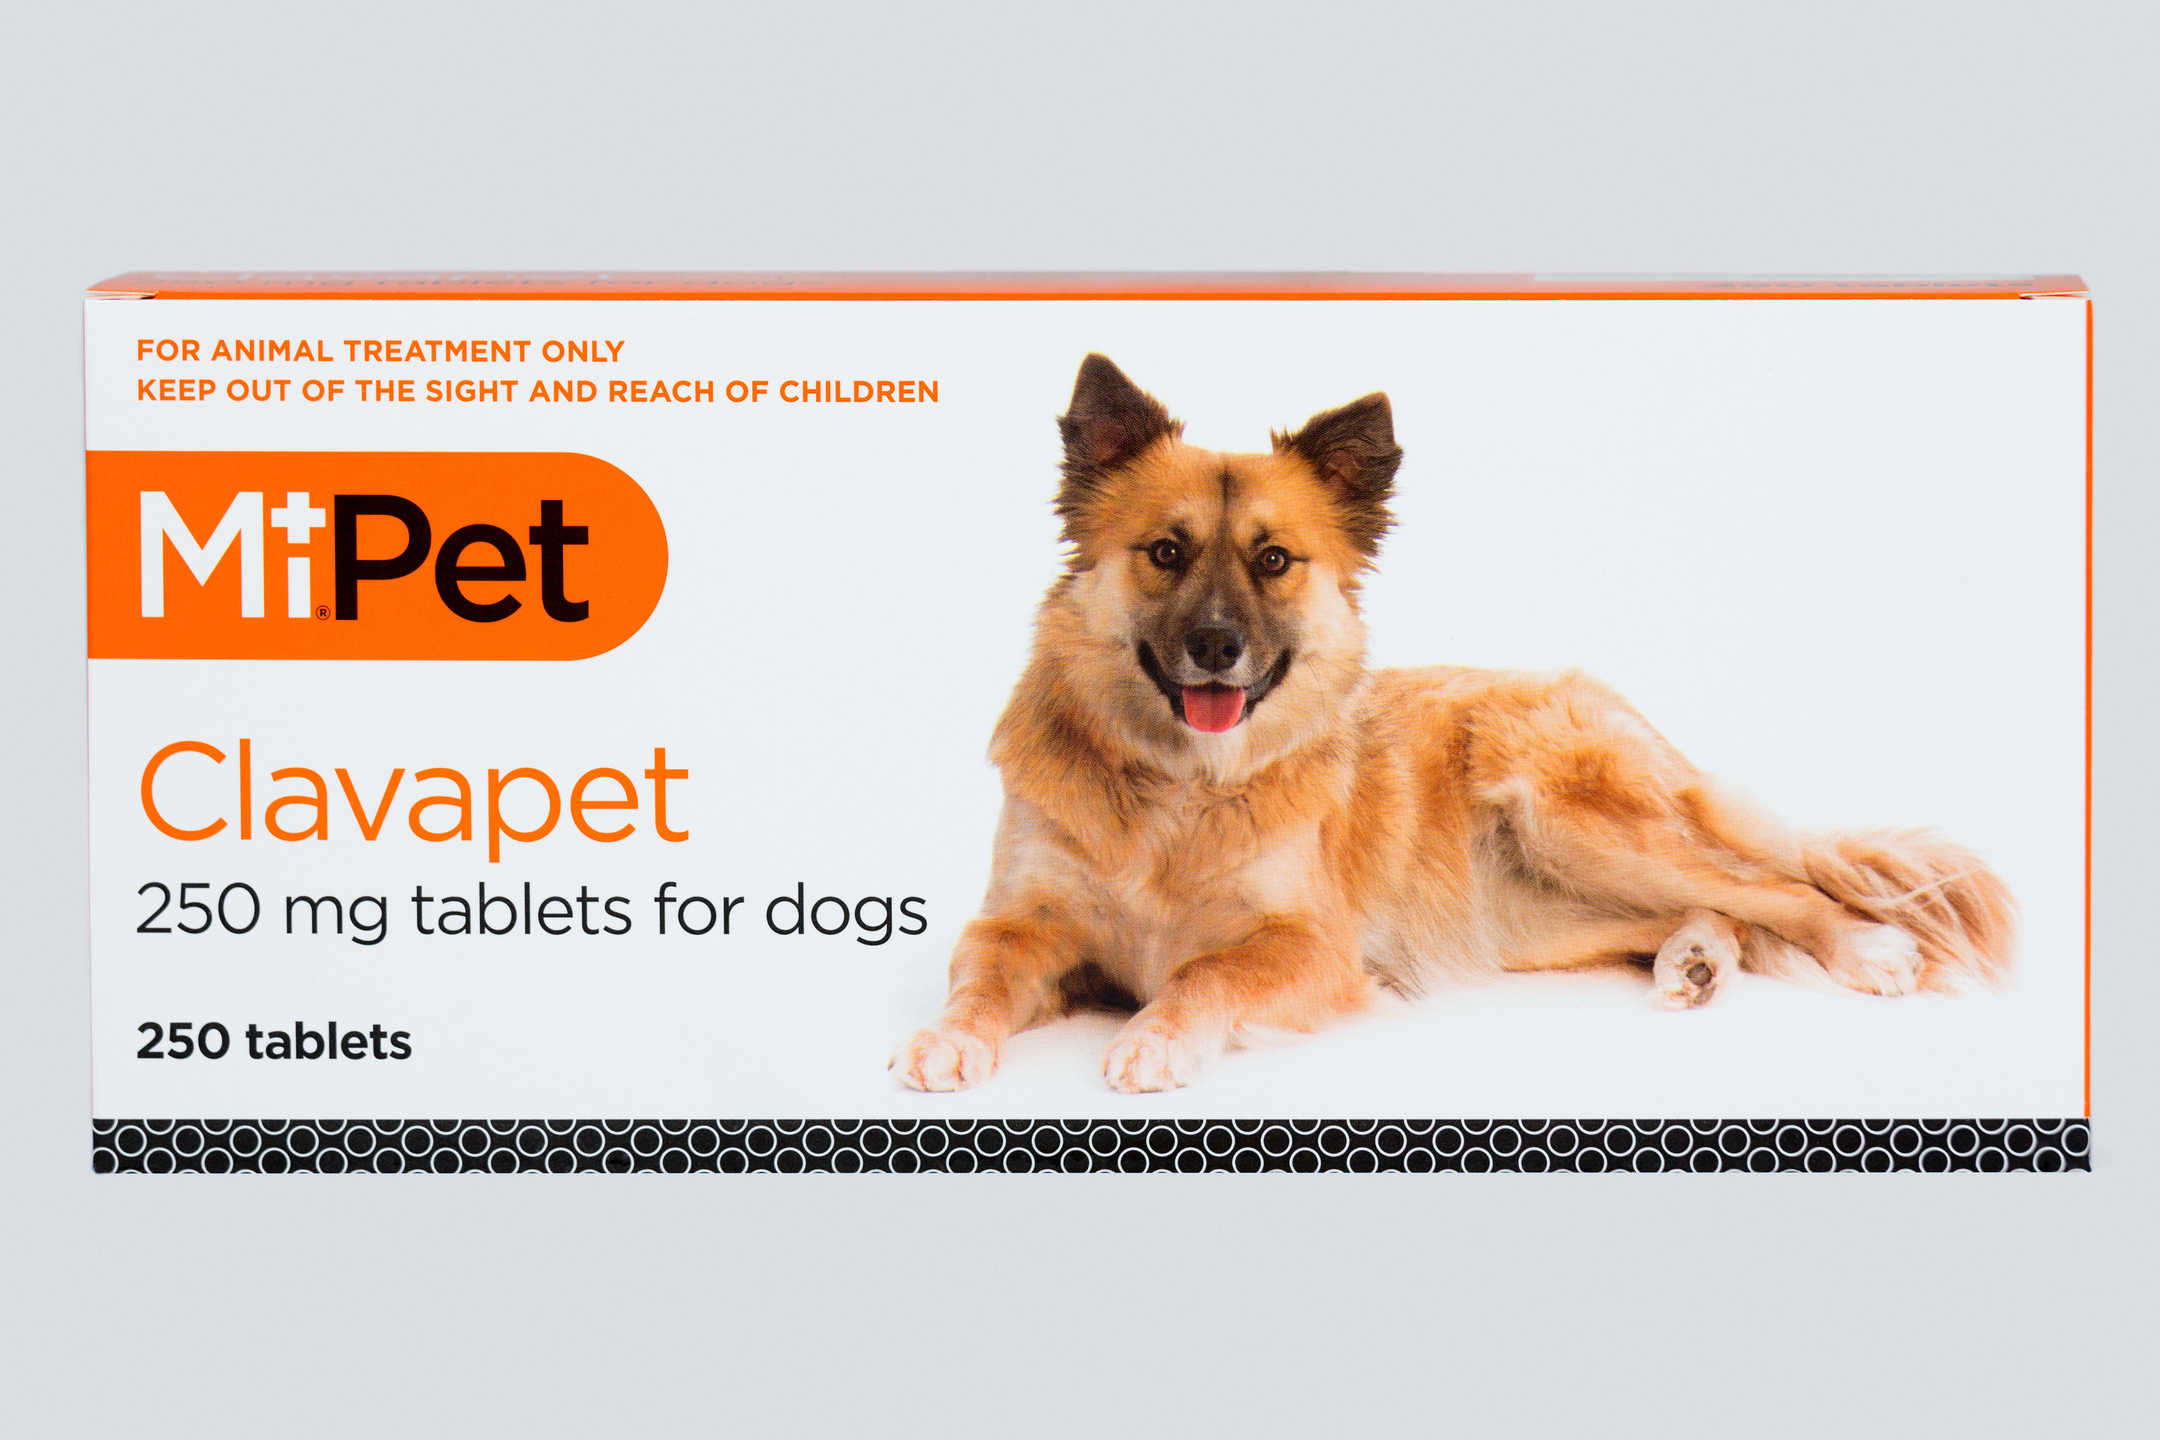 Pages 2016 02 09   clavapet 250mg x250 for dogs   www.josephcaseyphotography.com